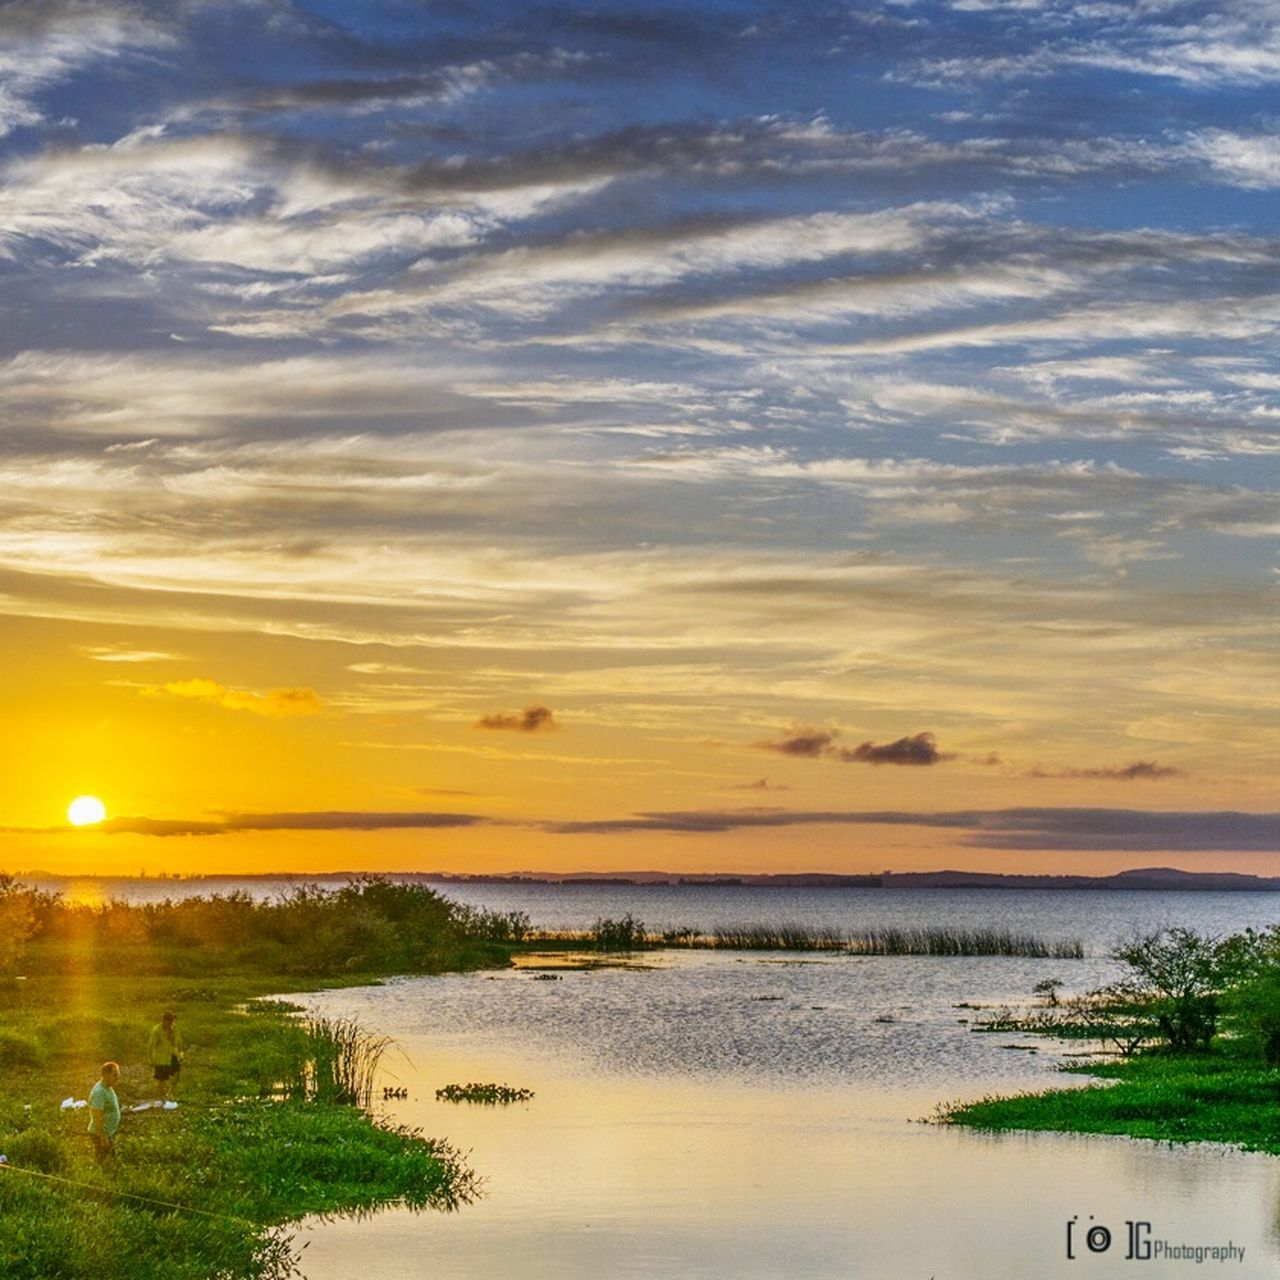 water, scenics, sunset, sky, tranquility, beauty in nature, nature, tranquil scene, cloud - sky, sea, beach, outdoors, landscape, no people, horizon over water, grass, tree, day